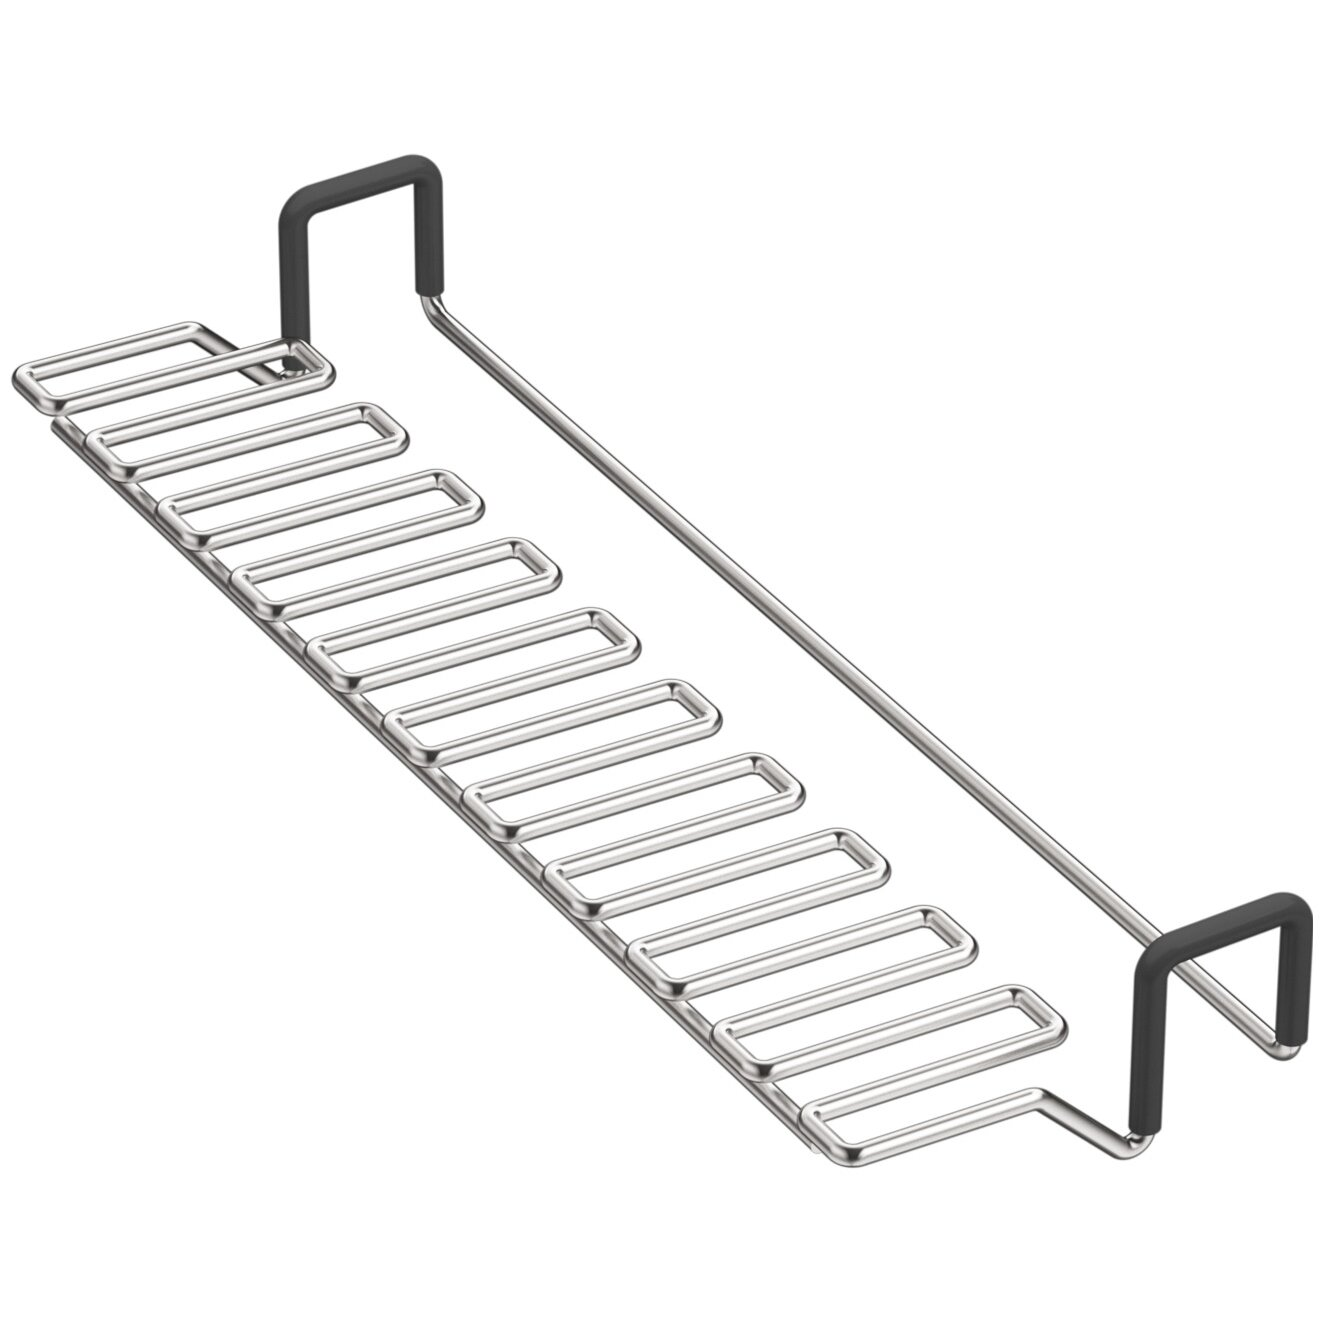 Kohler Strive Sink : Kohler Strive Sink Rack Wayfair